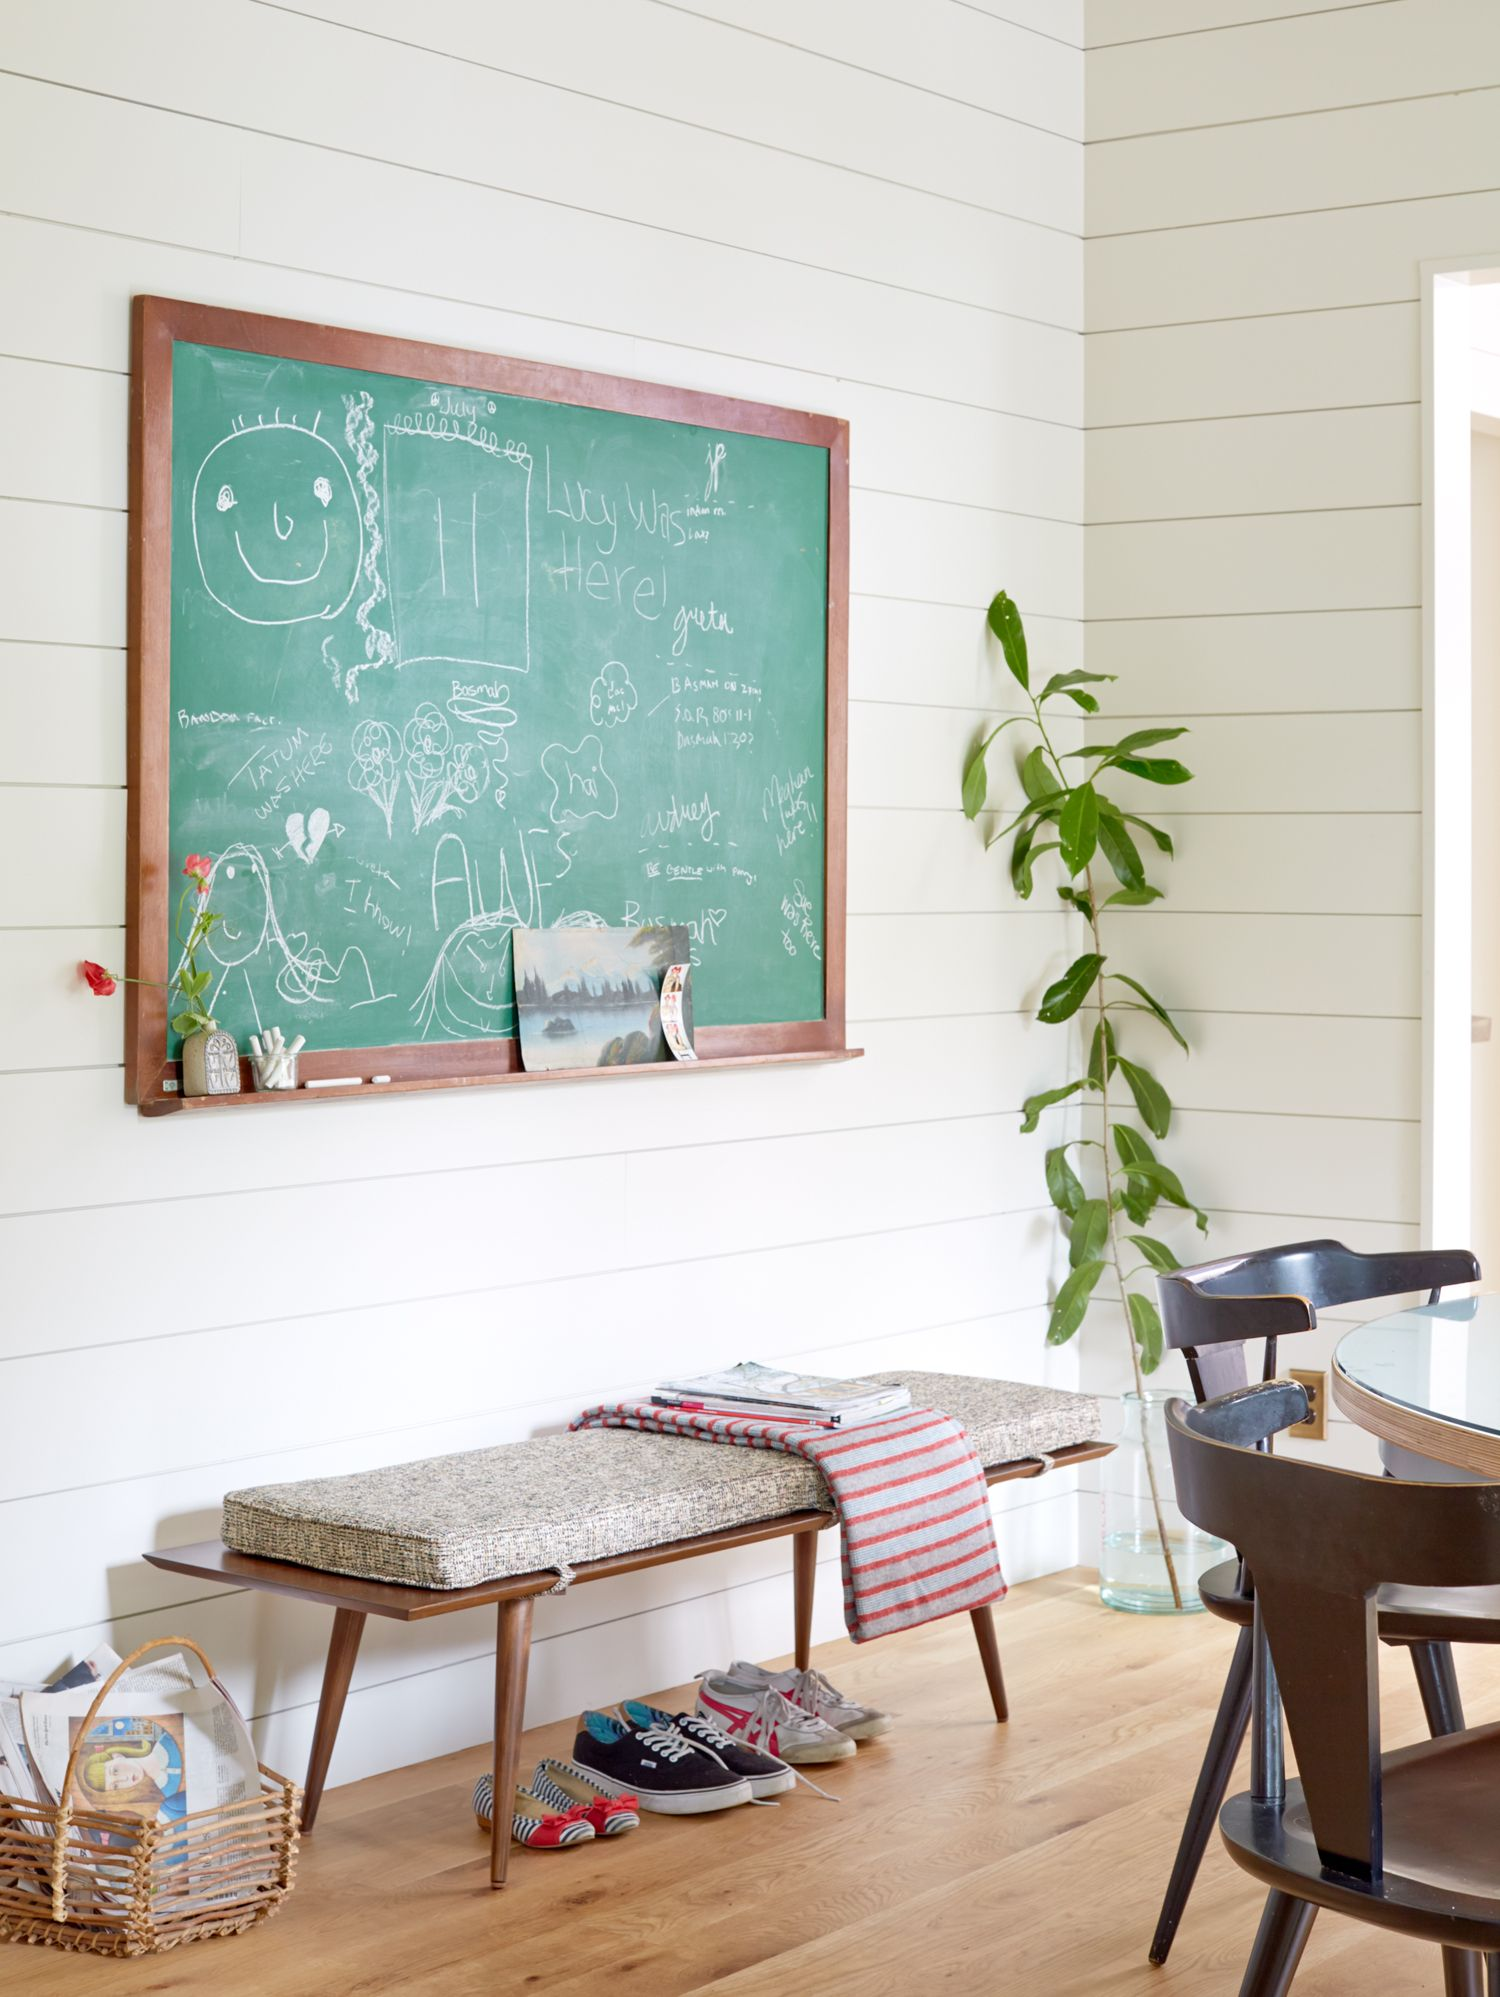 Styled: New Year + New Home | Schoolhouse electric, House and Room